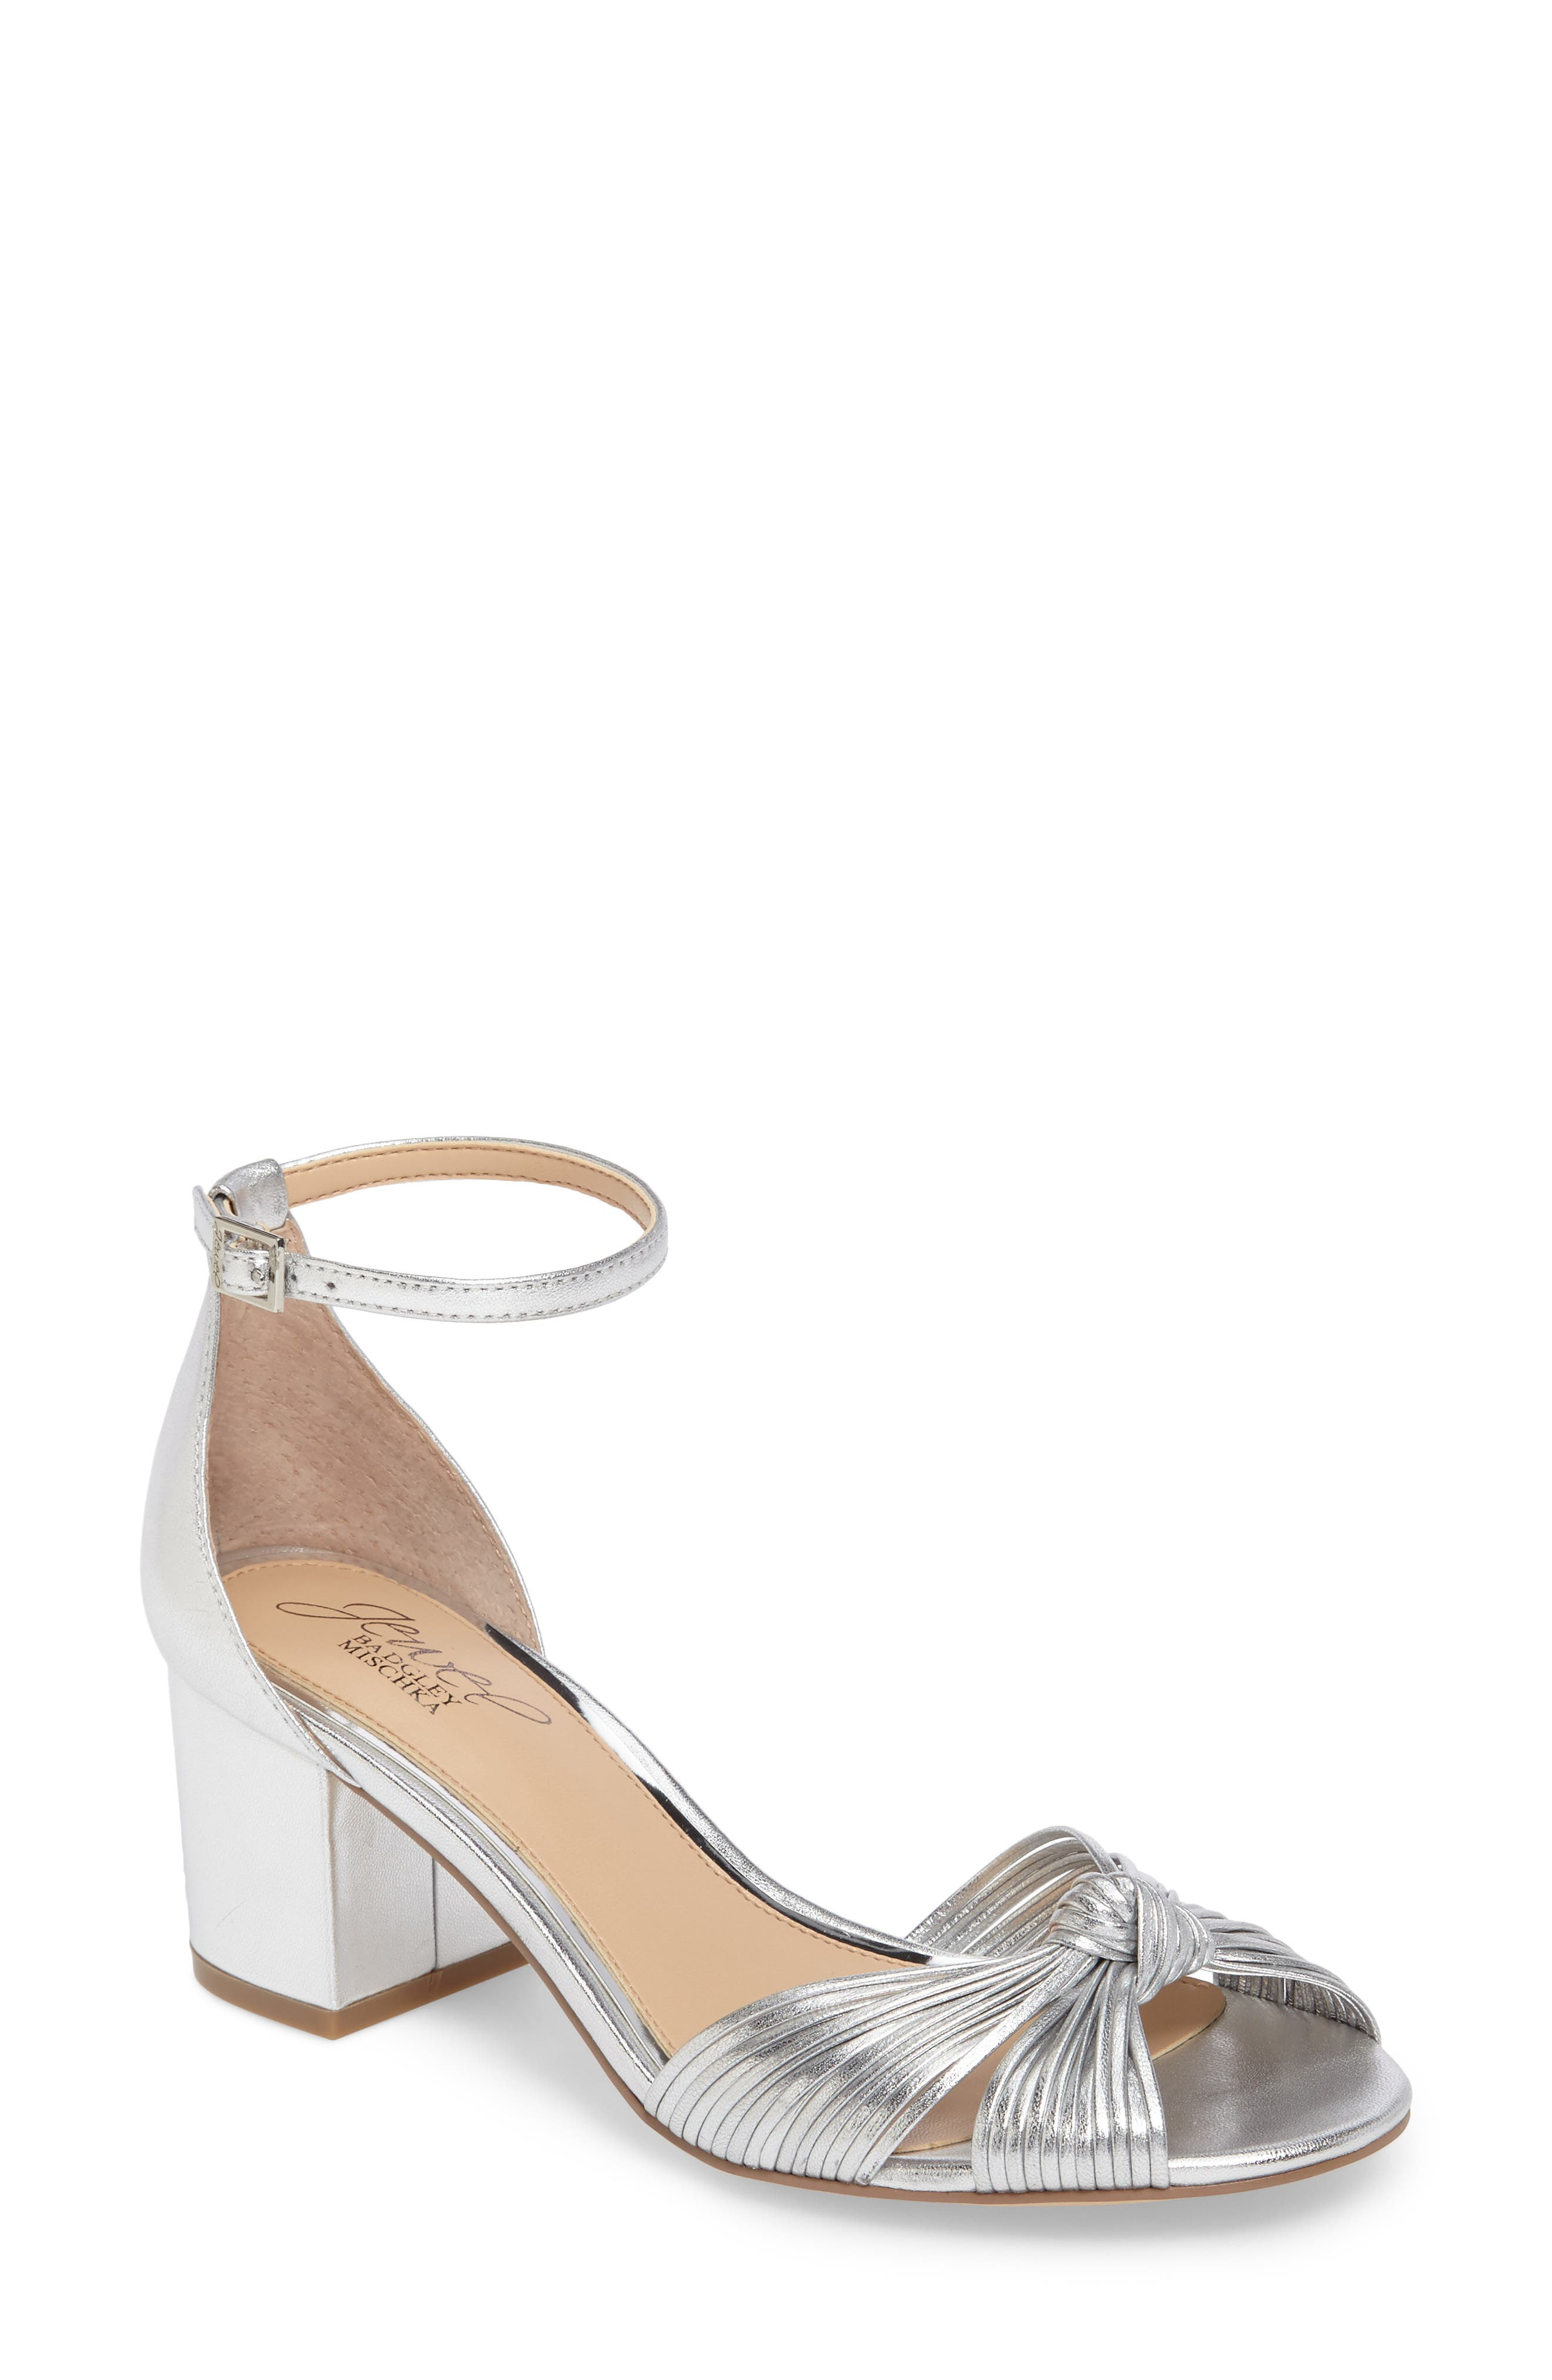 Main Image - Jewel Badgley Mischka Lacey Ankle Strap Pump (Women)